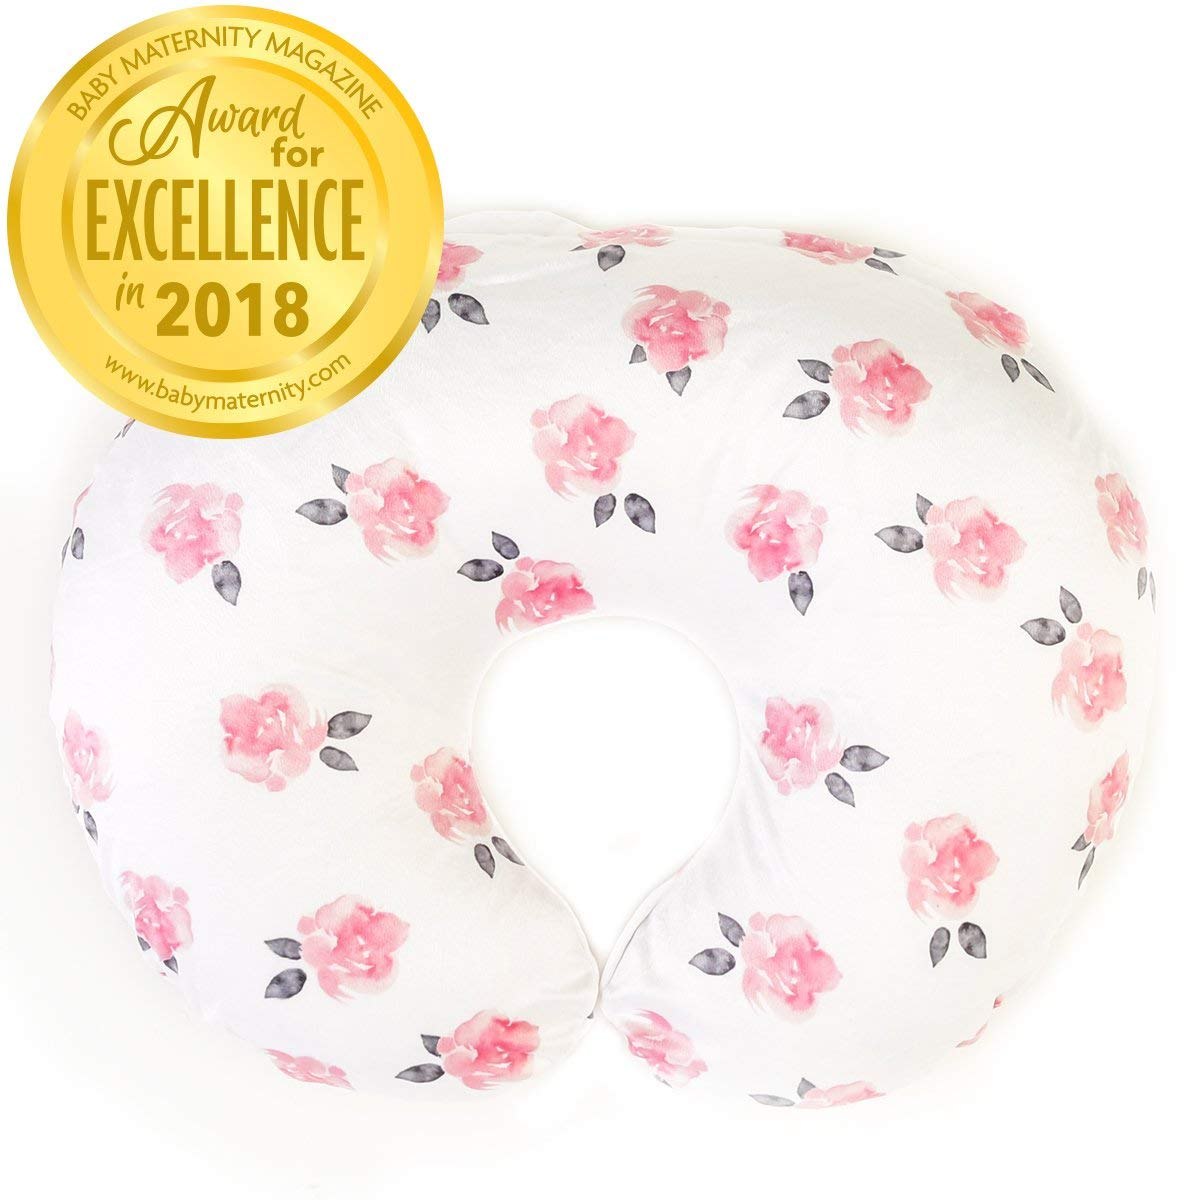 Minky Nursing Pillow Cover - Slipcover ONLY - Peony Slipcover - Best for Breastfeeding Moms - Soft Fabric Fits Snug On Infant Nursing Pillows to Aid Mothers While Breast Feeding by Kids N' Such